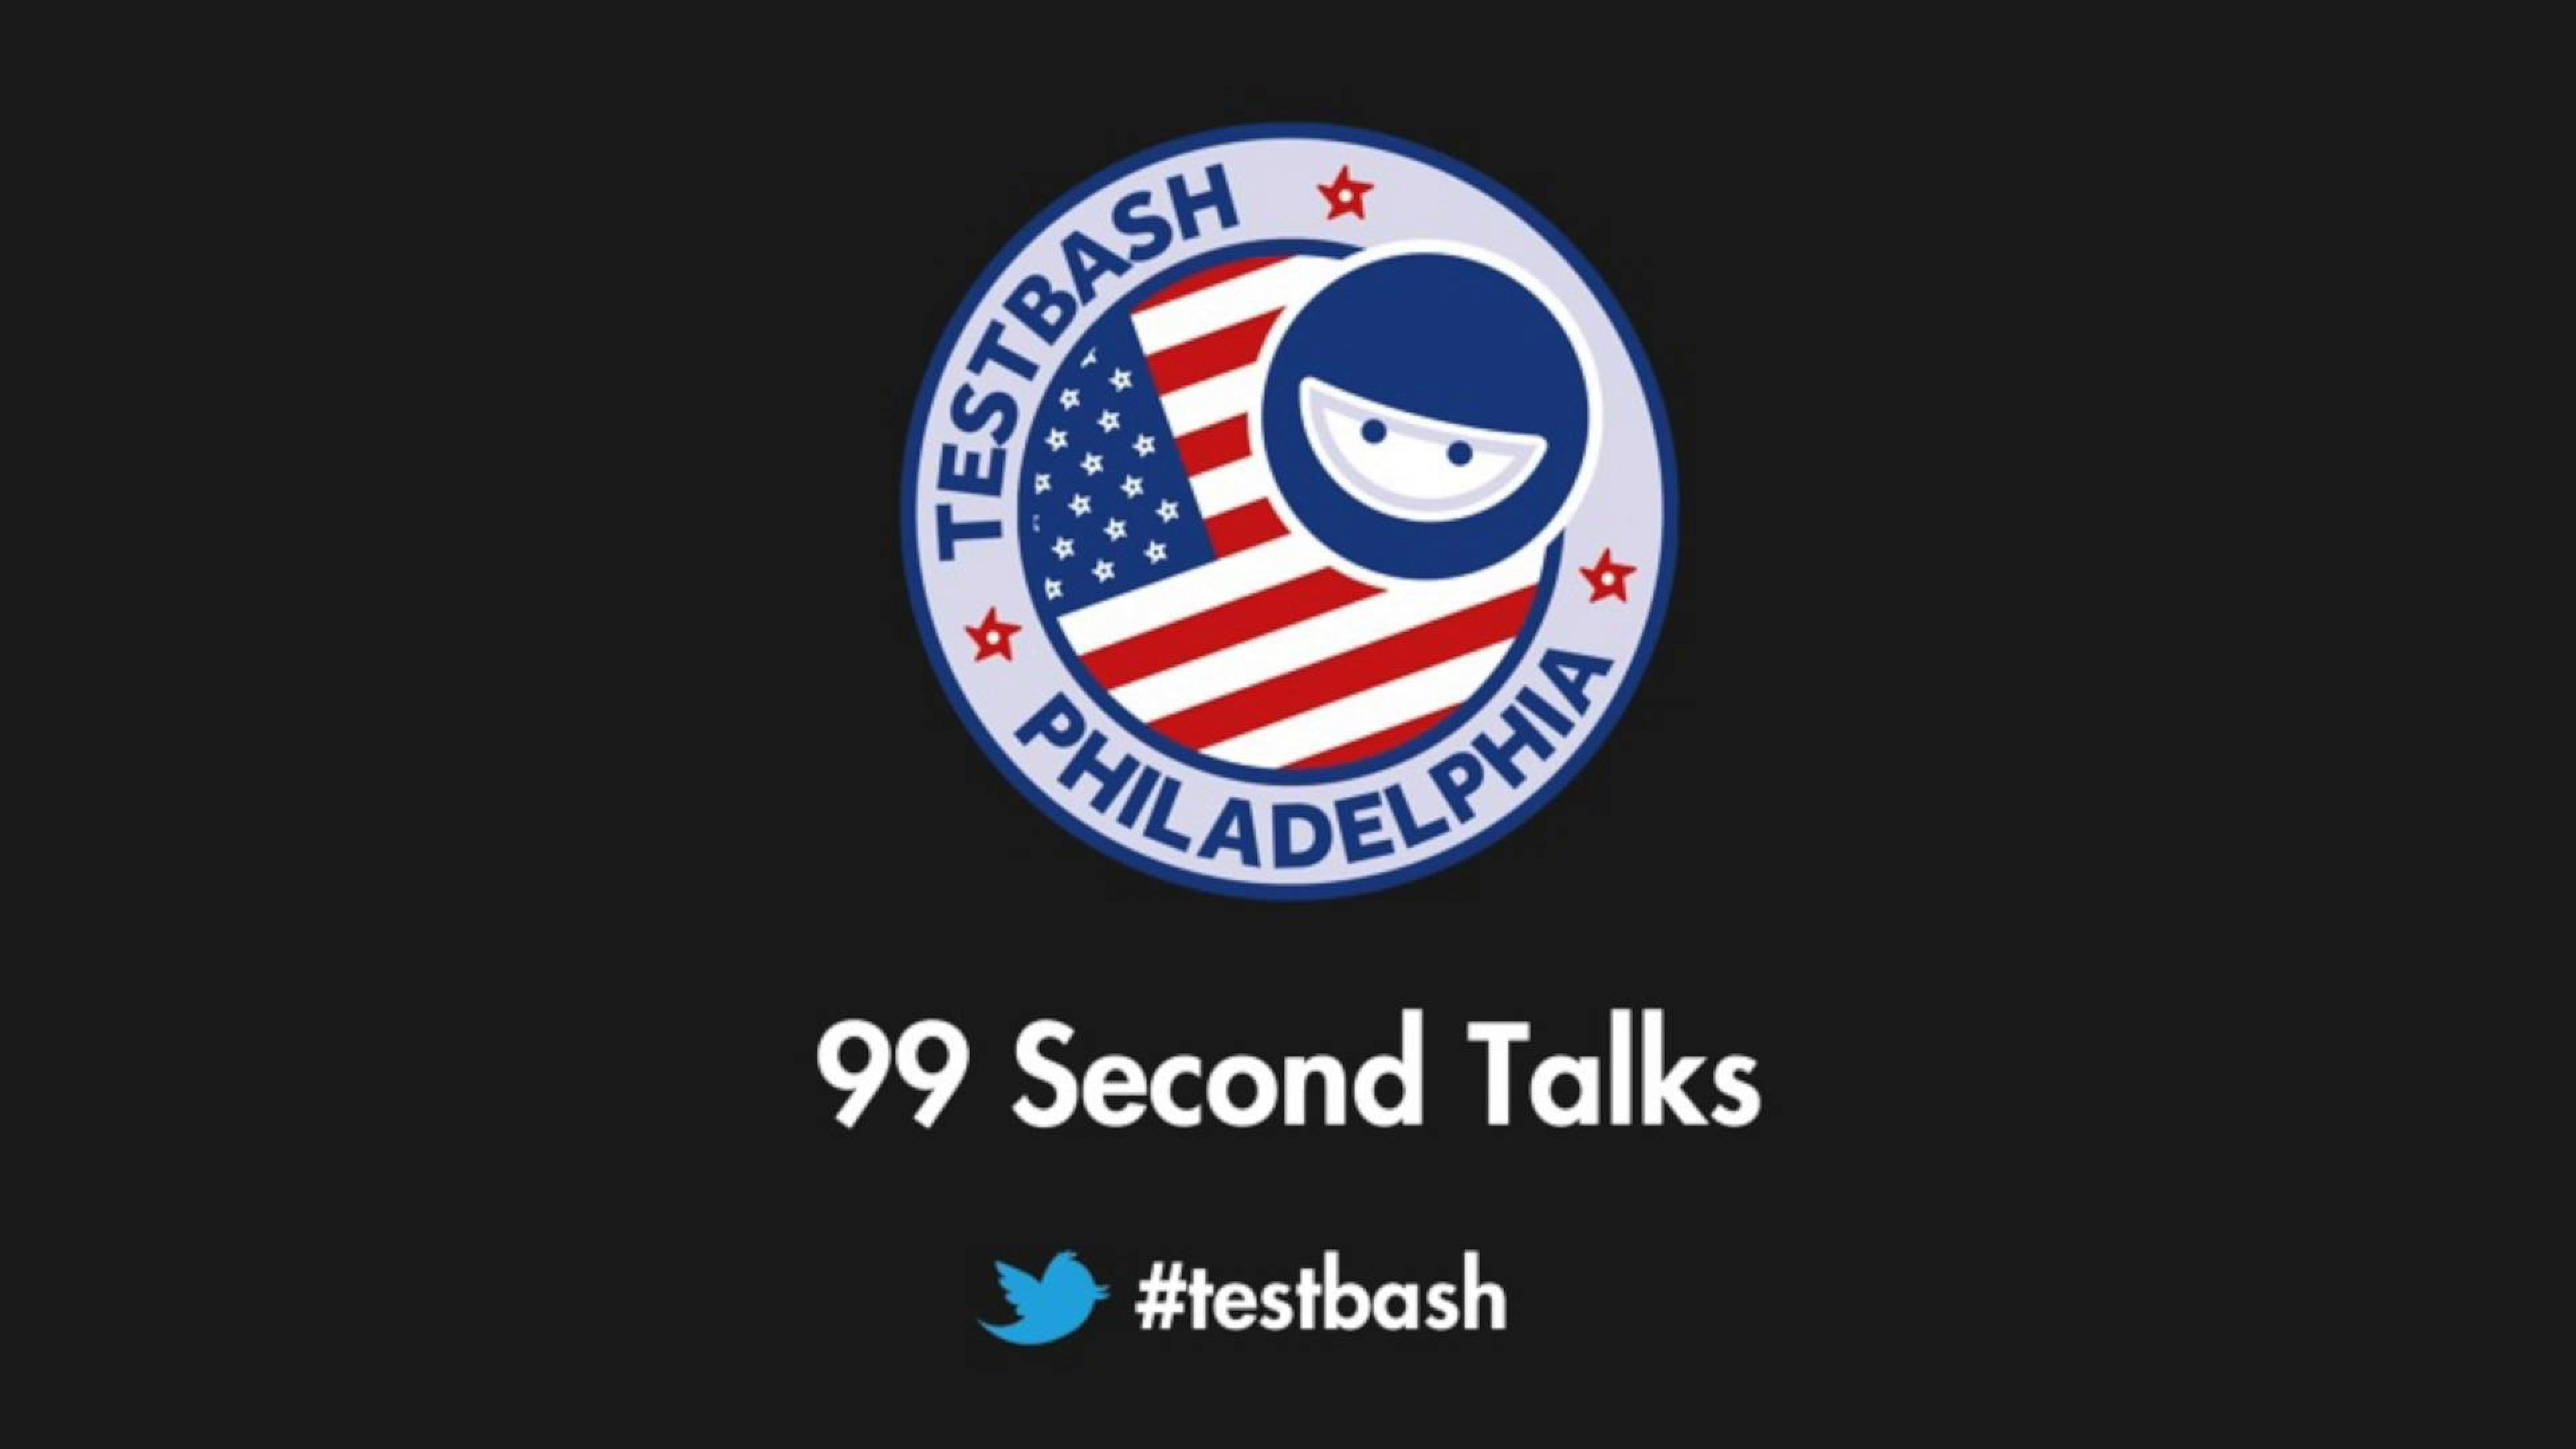 99 Second Talks - TestBash Philadelphia 2017